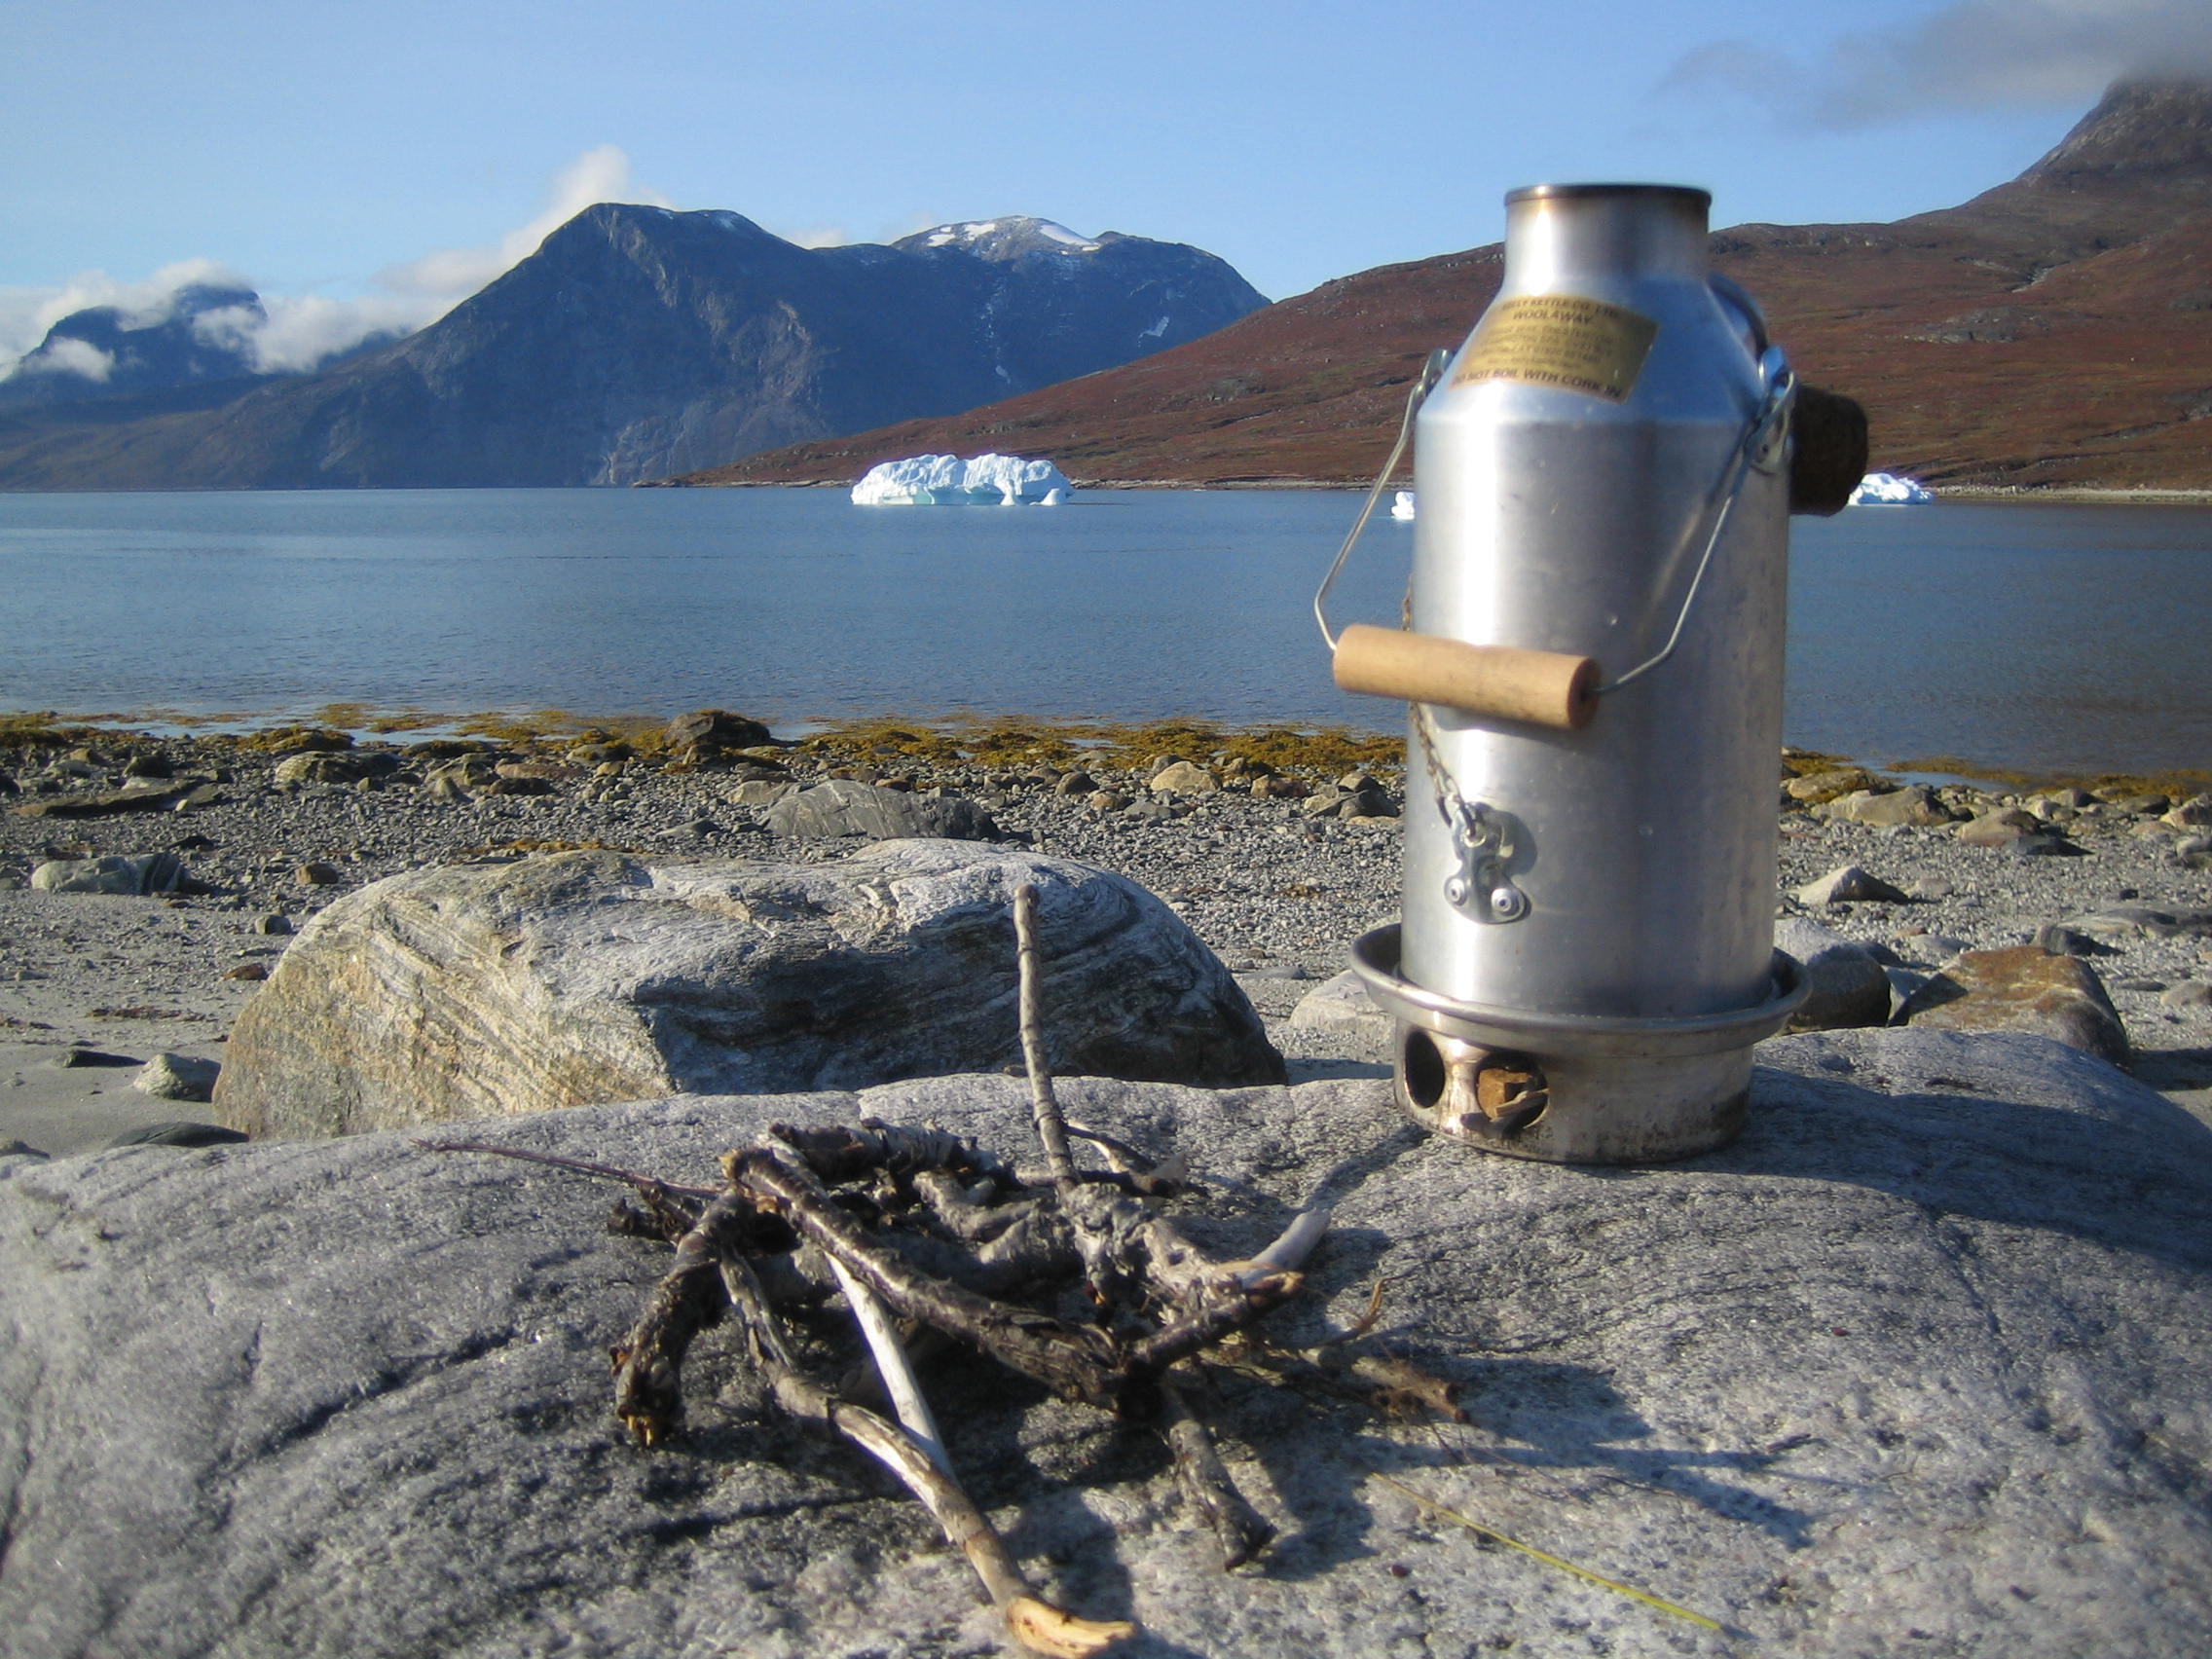 Kelly Kettle in Greenland (1 Pint)